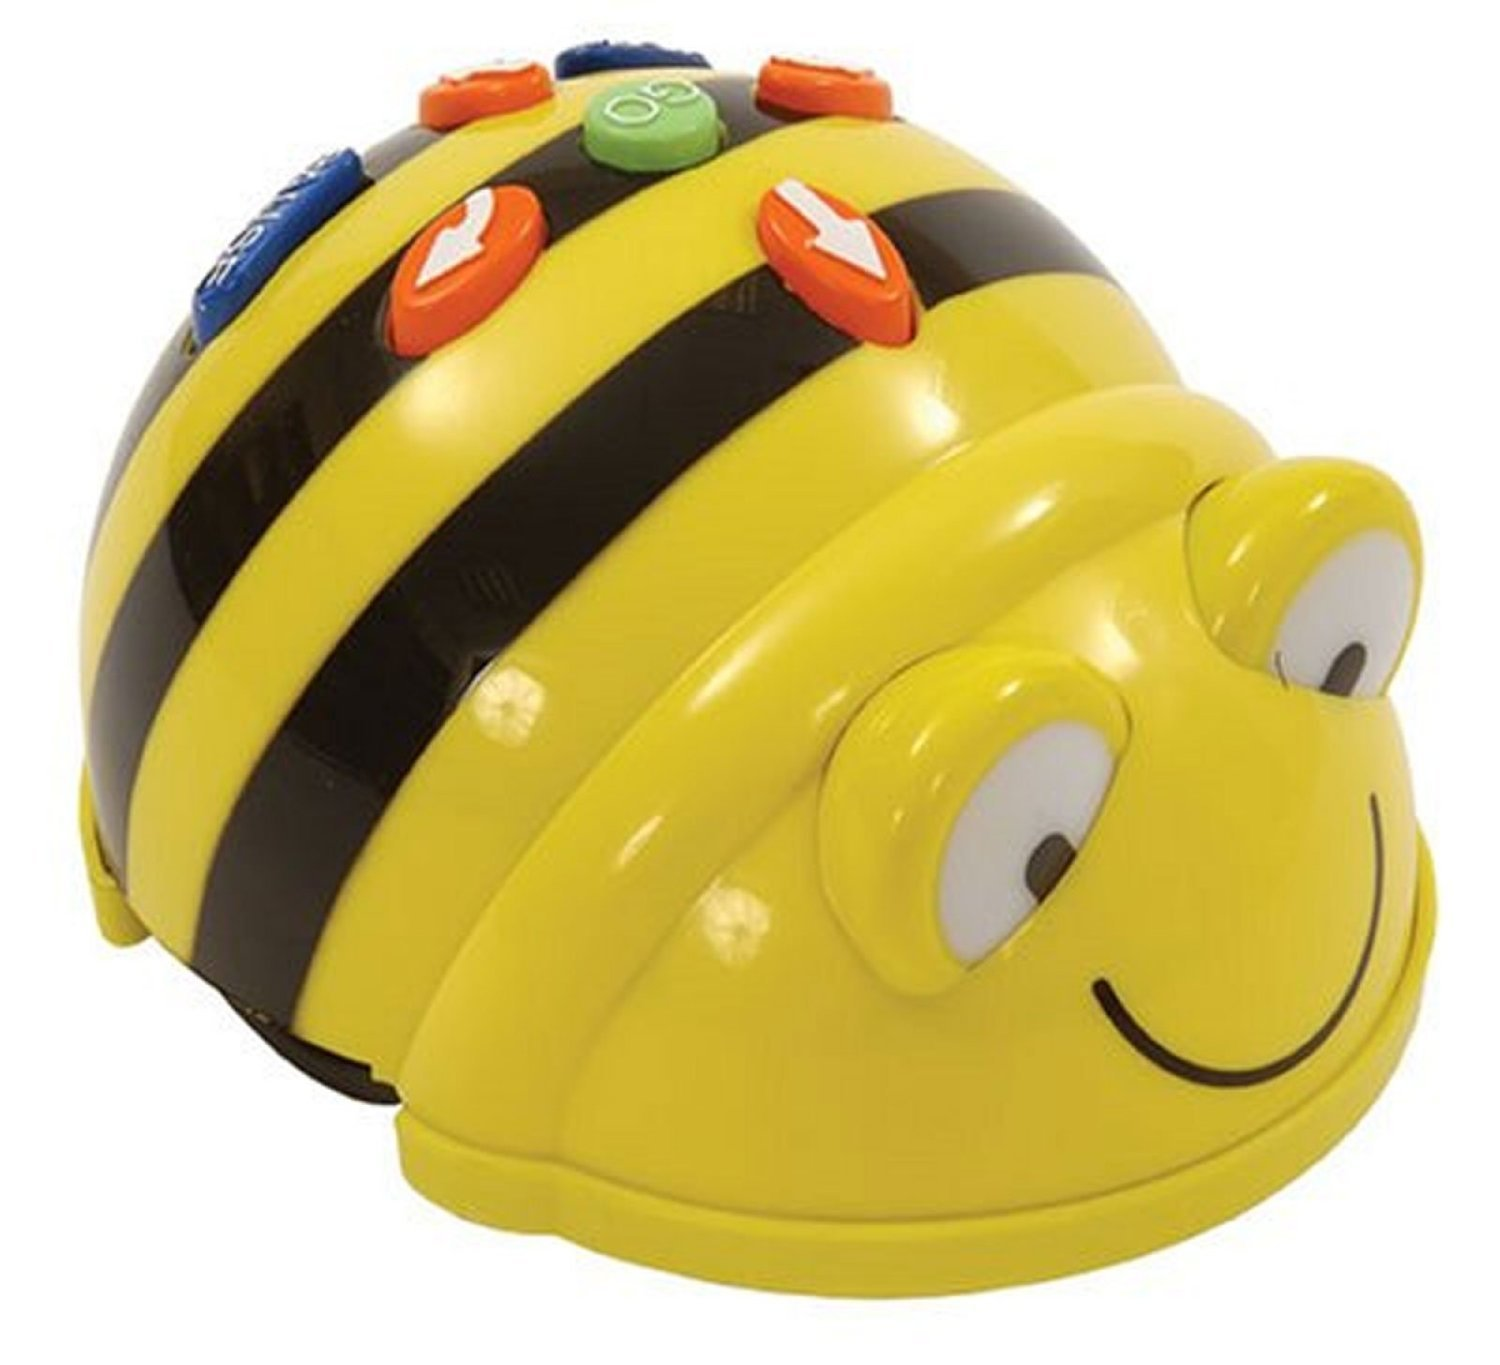 Bee-Bot Robotics & Coding for Early Years